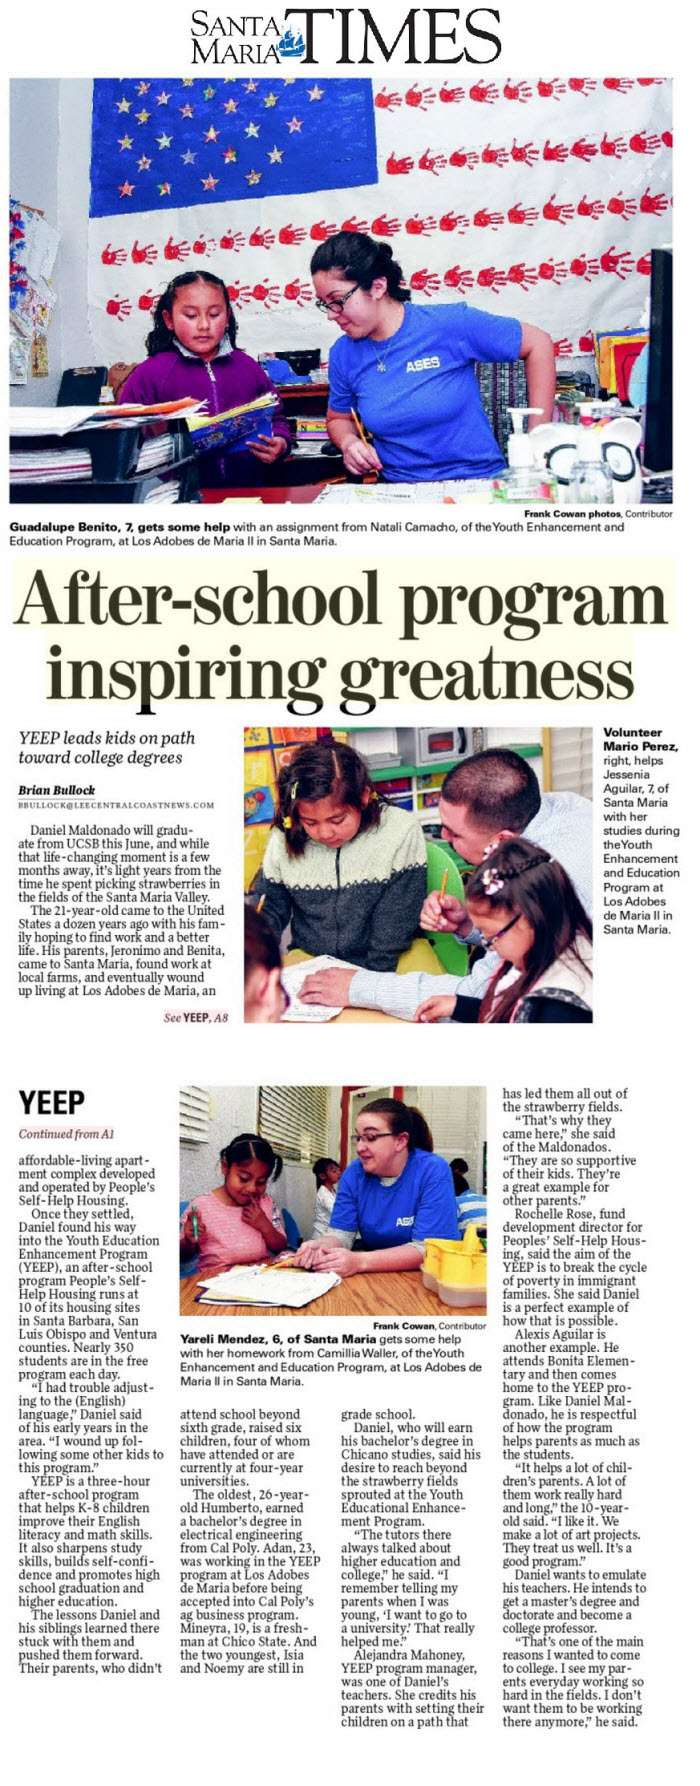 After-school program inspiring greatness - Santa Maria Times